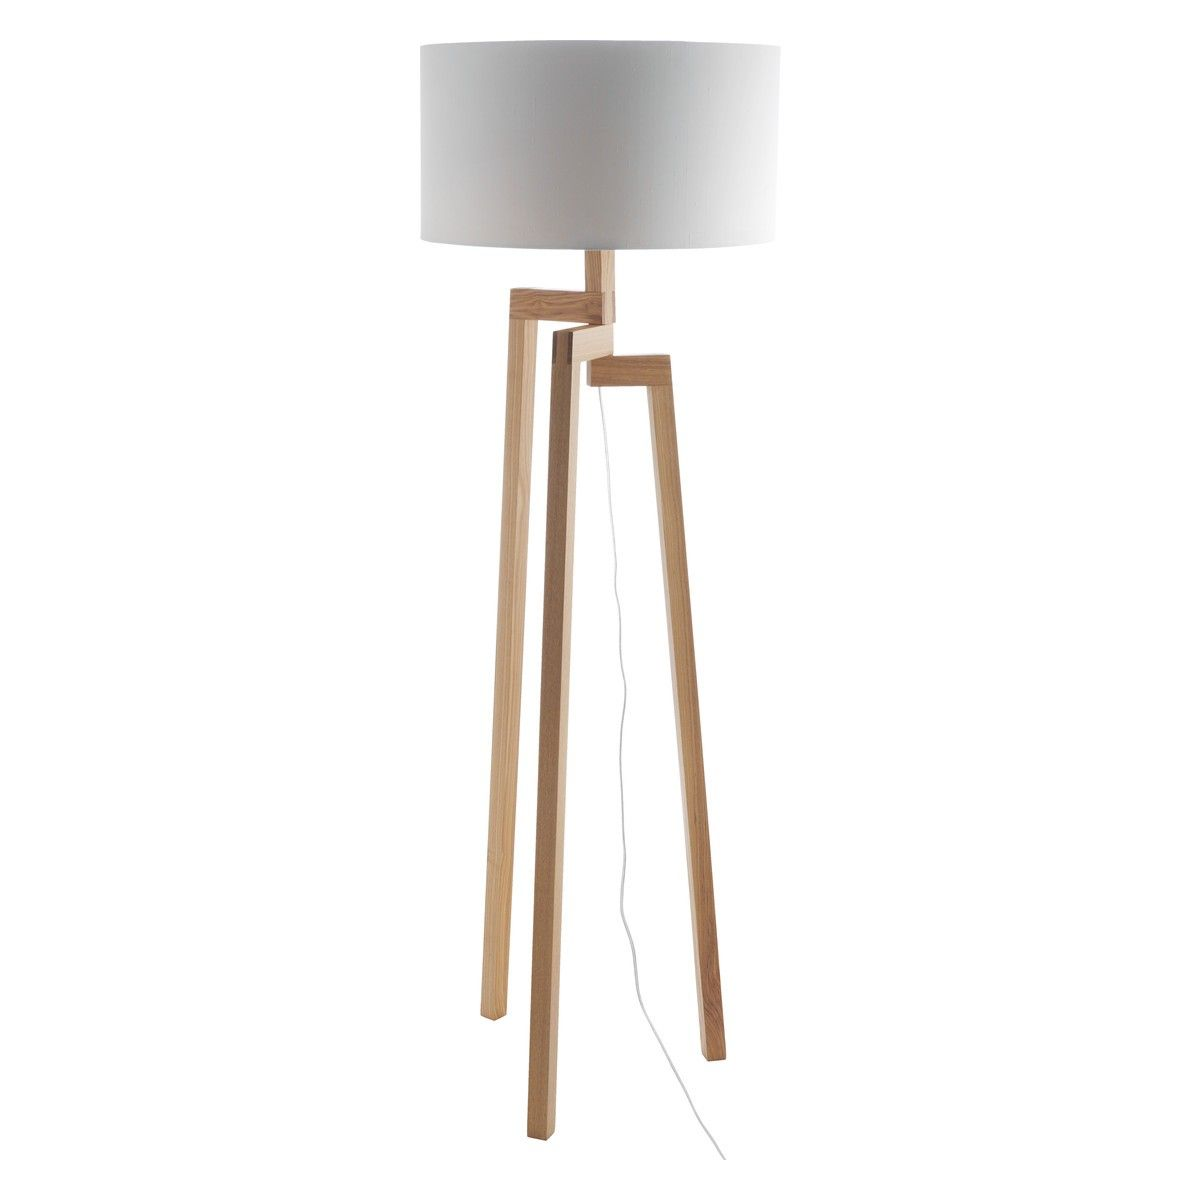 Dylan Base Ash Wooden Floor Lamp Floor Lamp Base Wooden Floor Lamps Floor Lamp